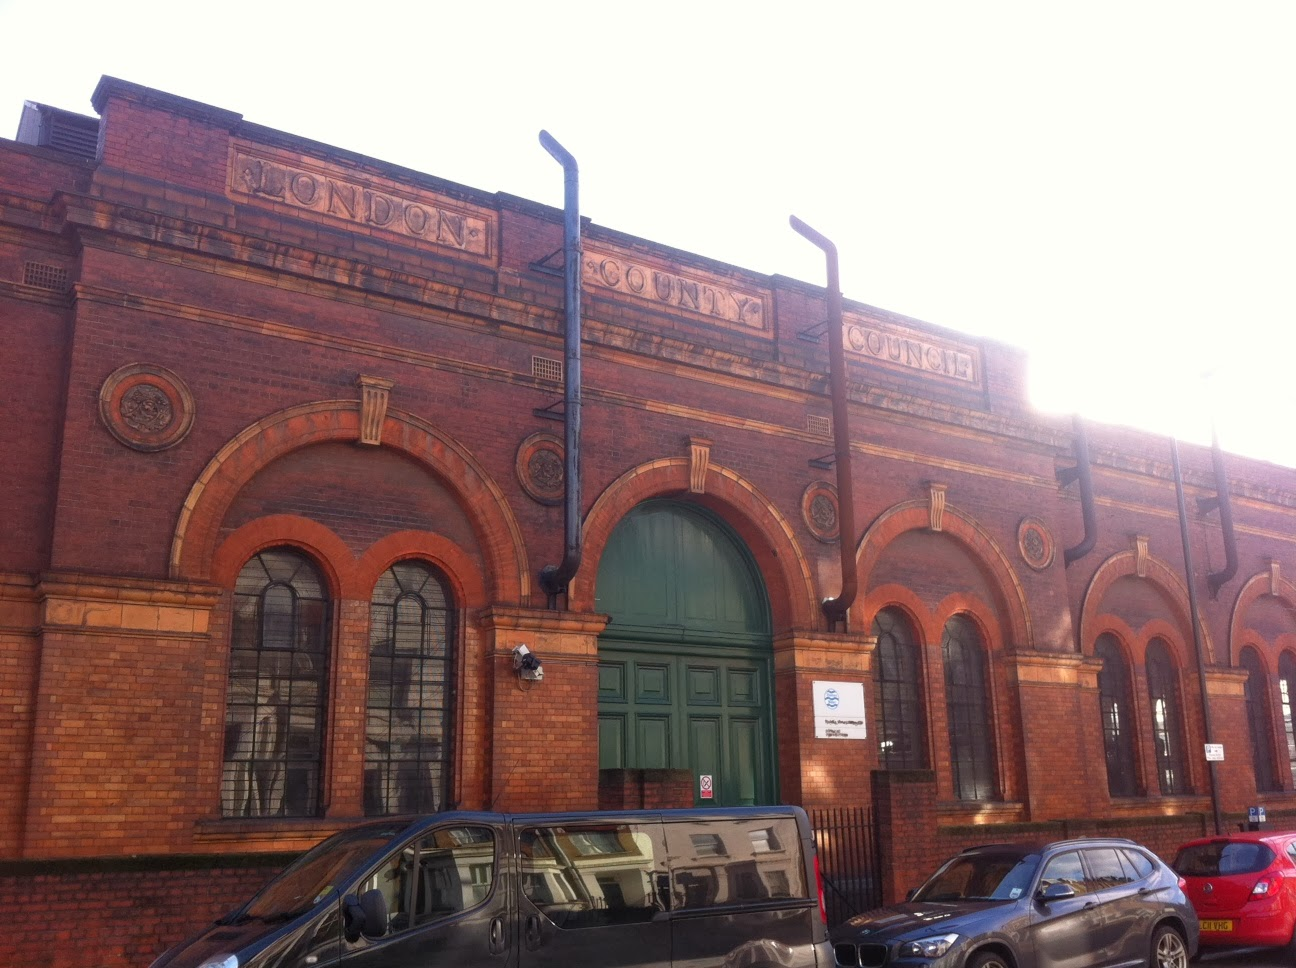 Thames Water Pumping Station, Lots Road, London